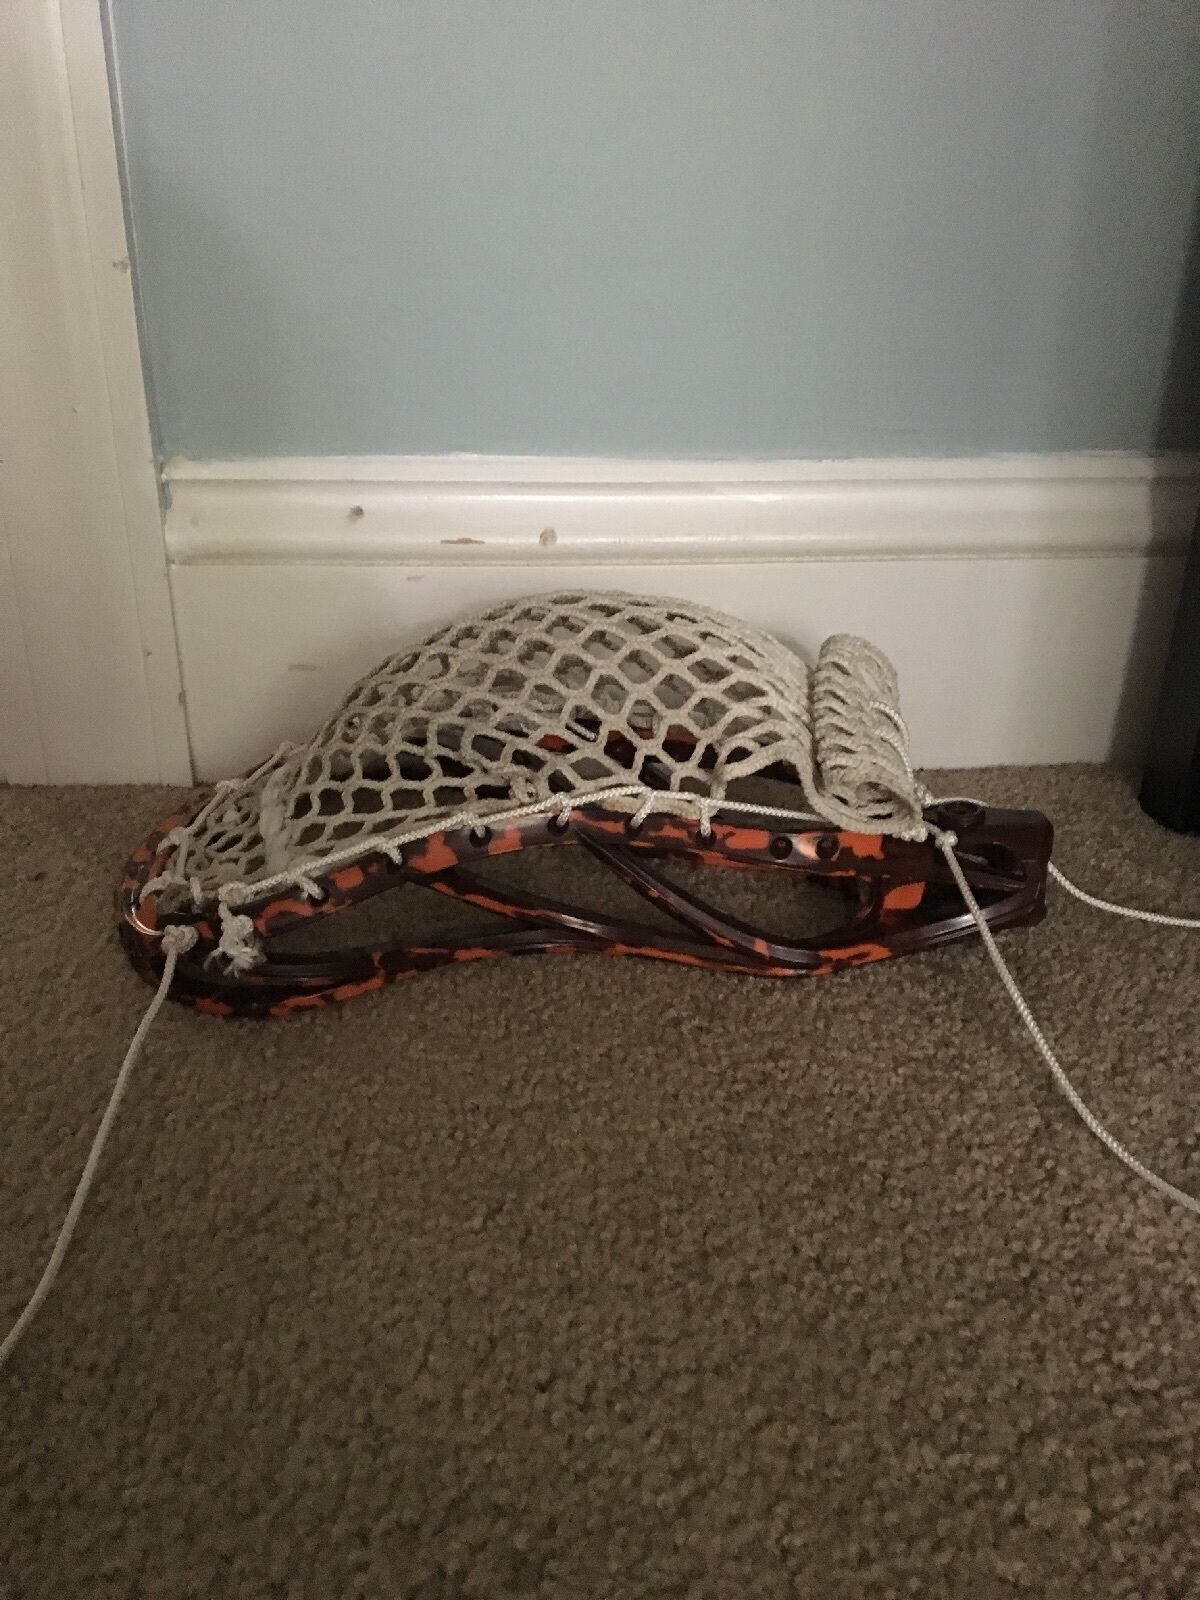 Lacrosse head strung and dyed with a orange maroon color